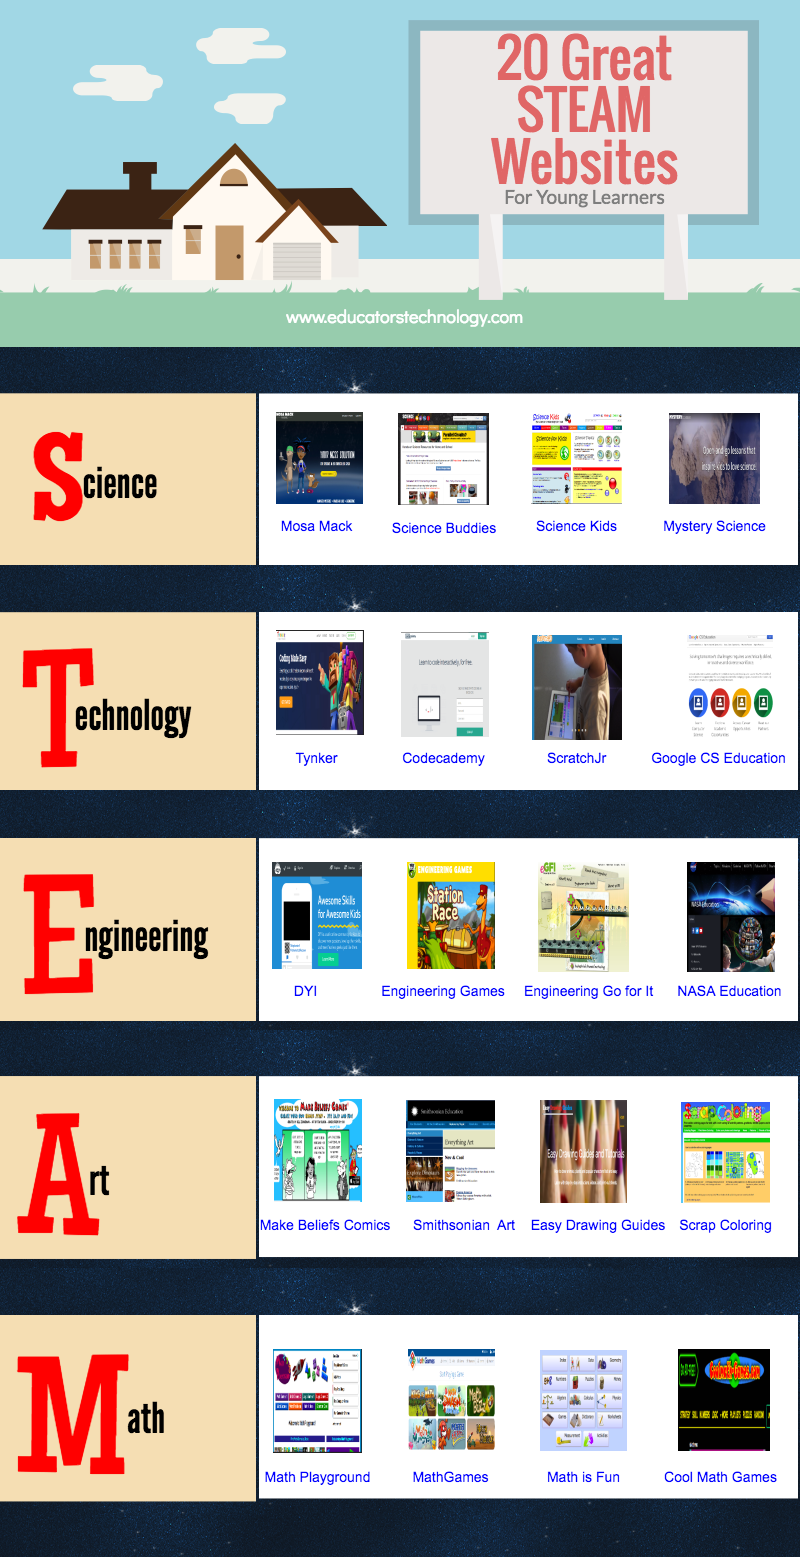 20 Great STEAM Websites for Young Learners | Educational Technology ...